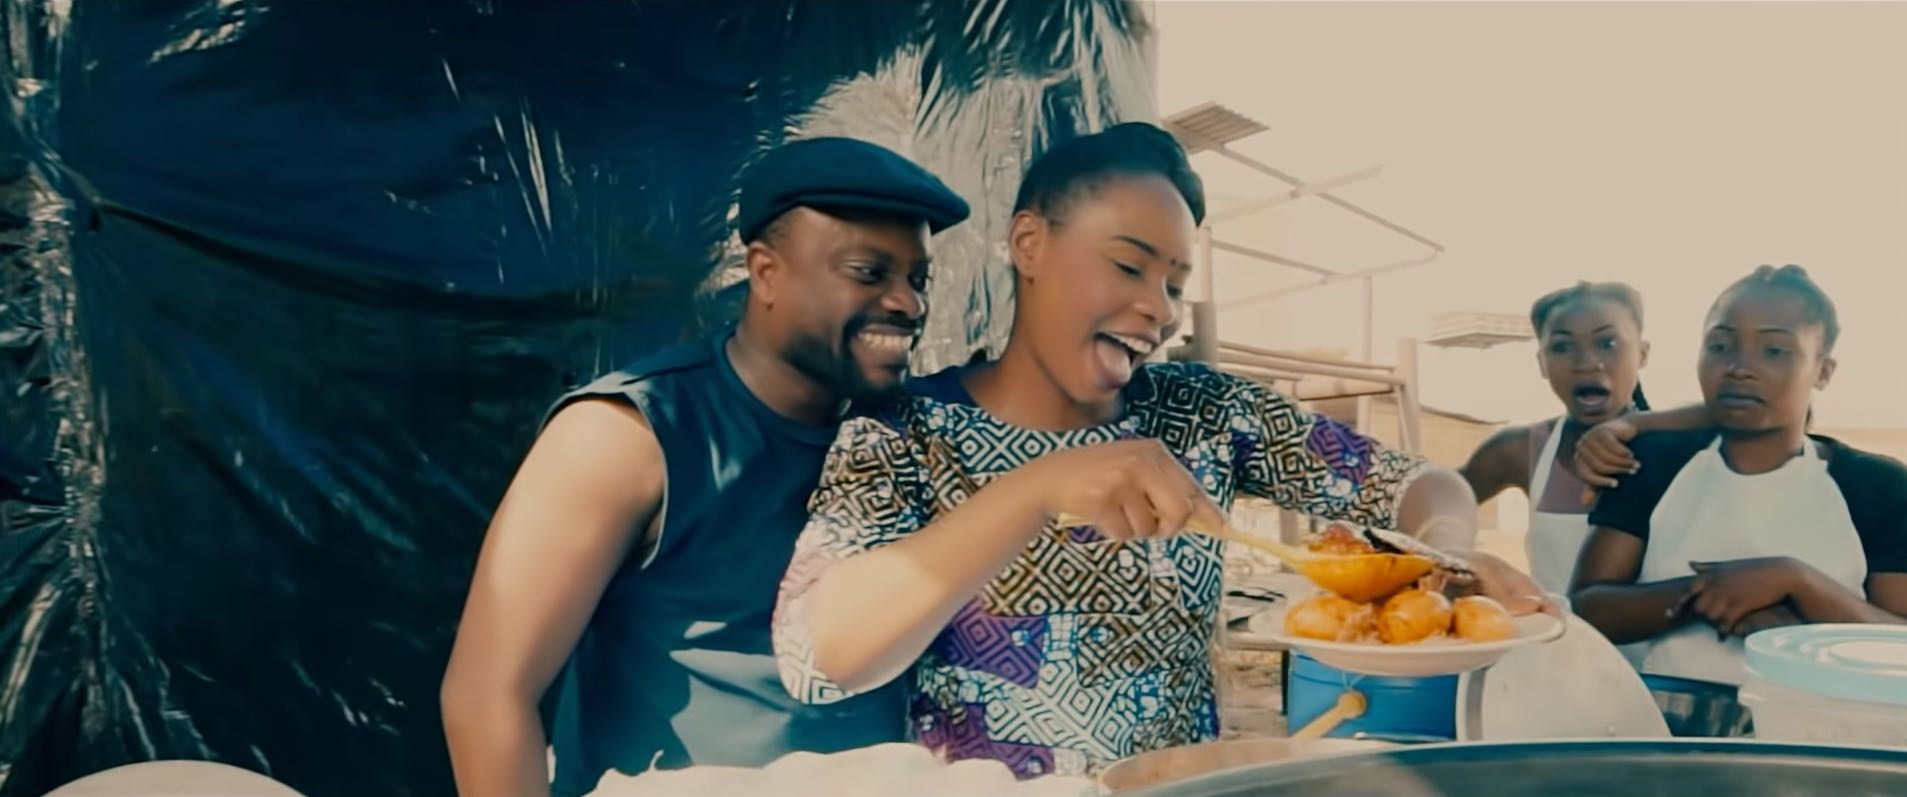 yemi-alade-tumbum-video-2